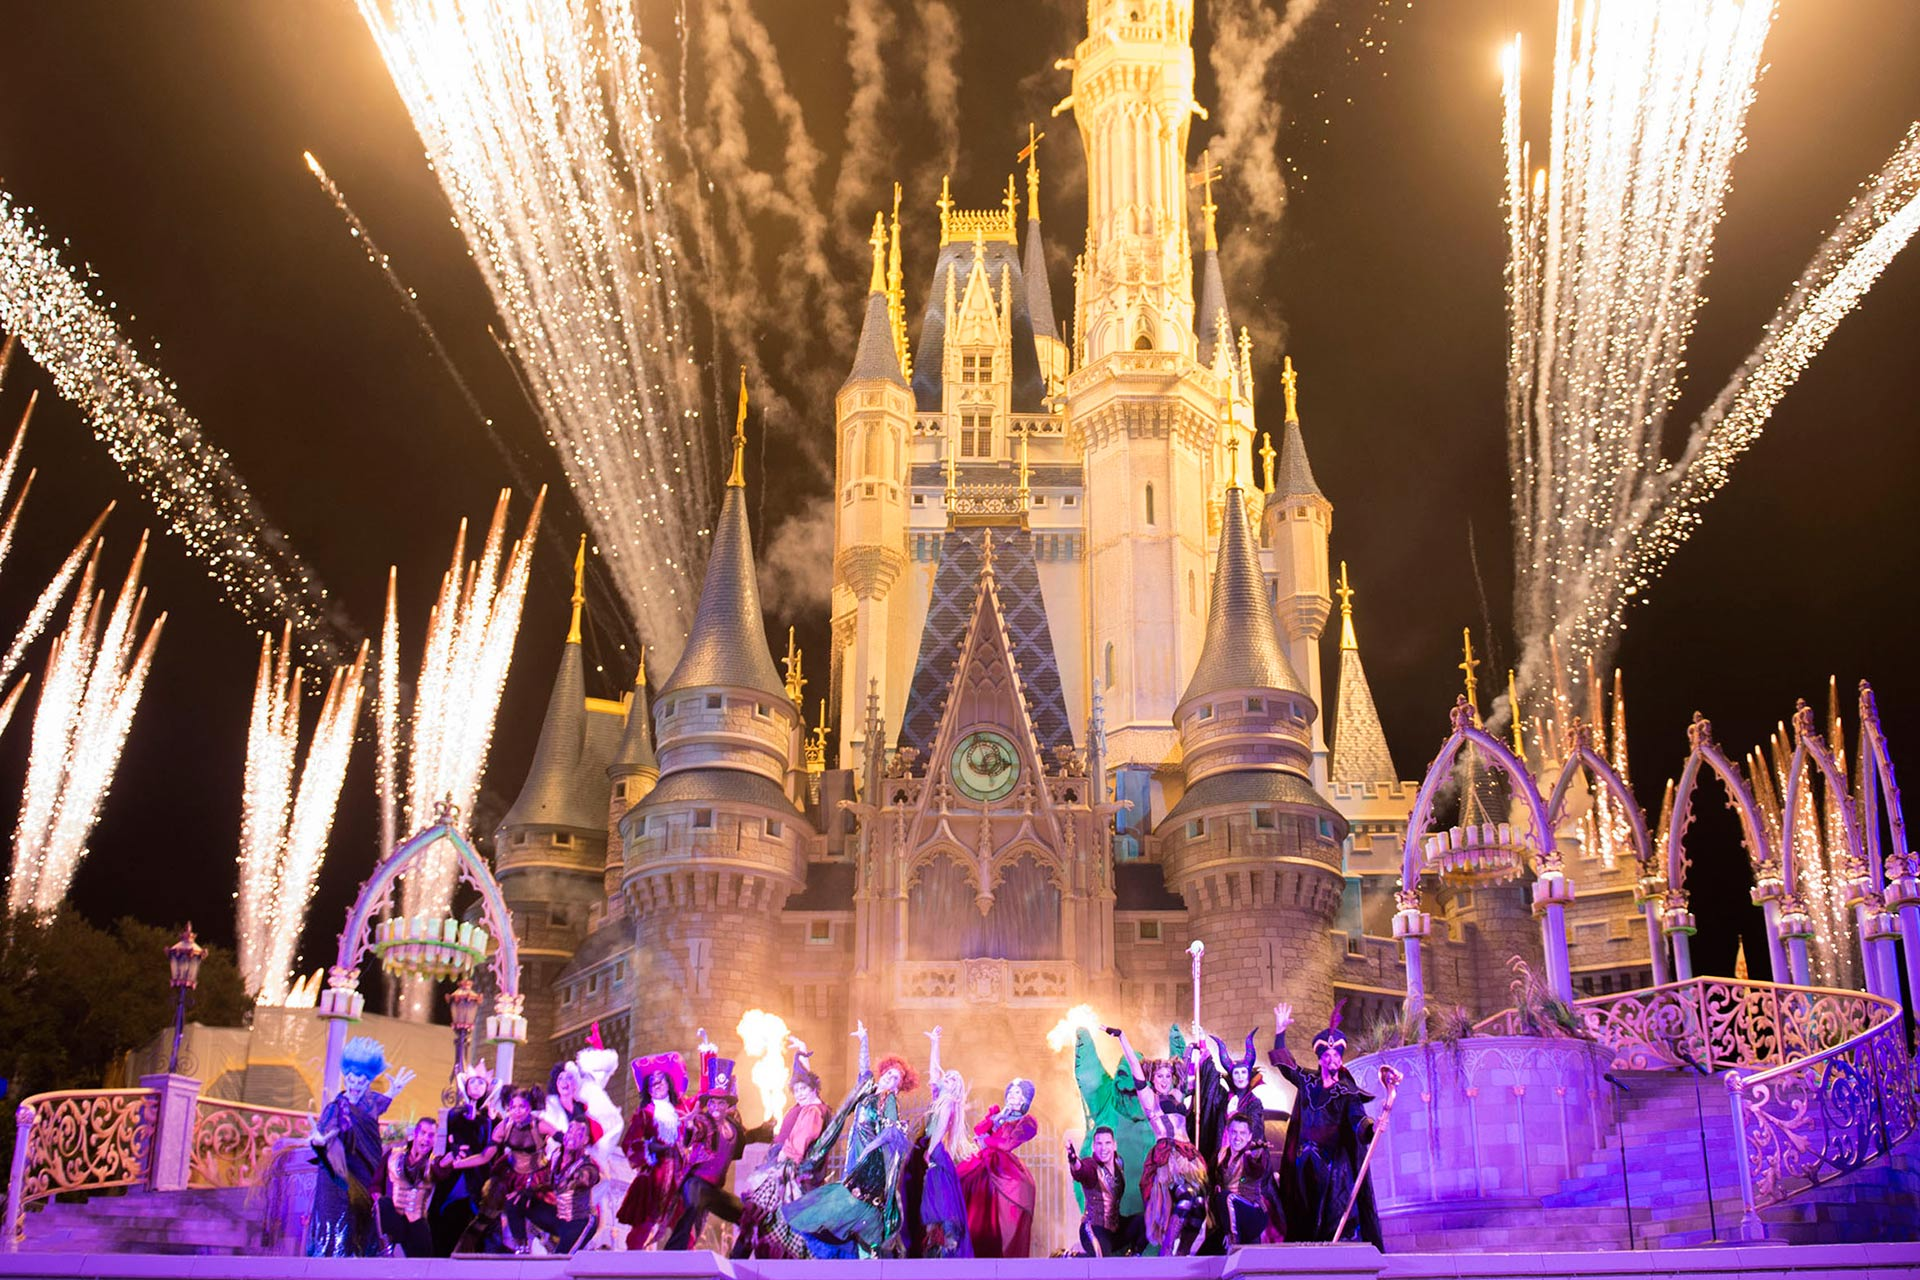 'Hocus Pocus Villain Spelltacular' Show during Mickey's Not-So-Scary Halloween Party at Disney